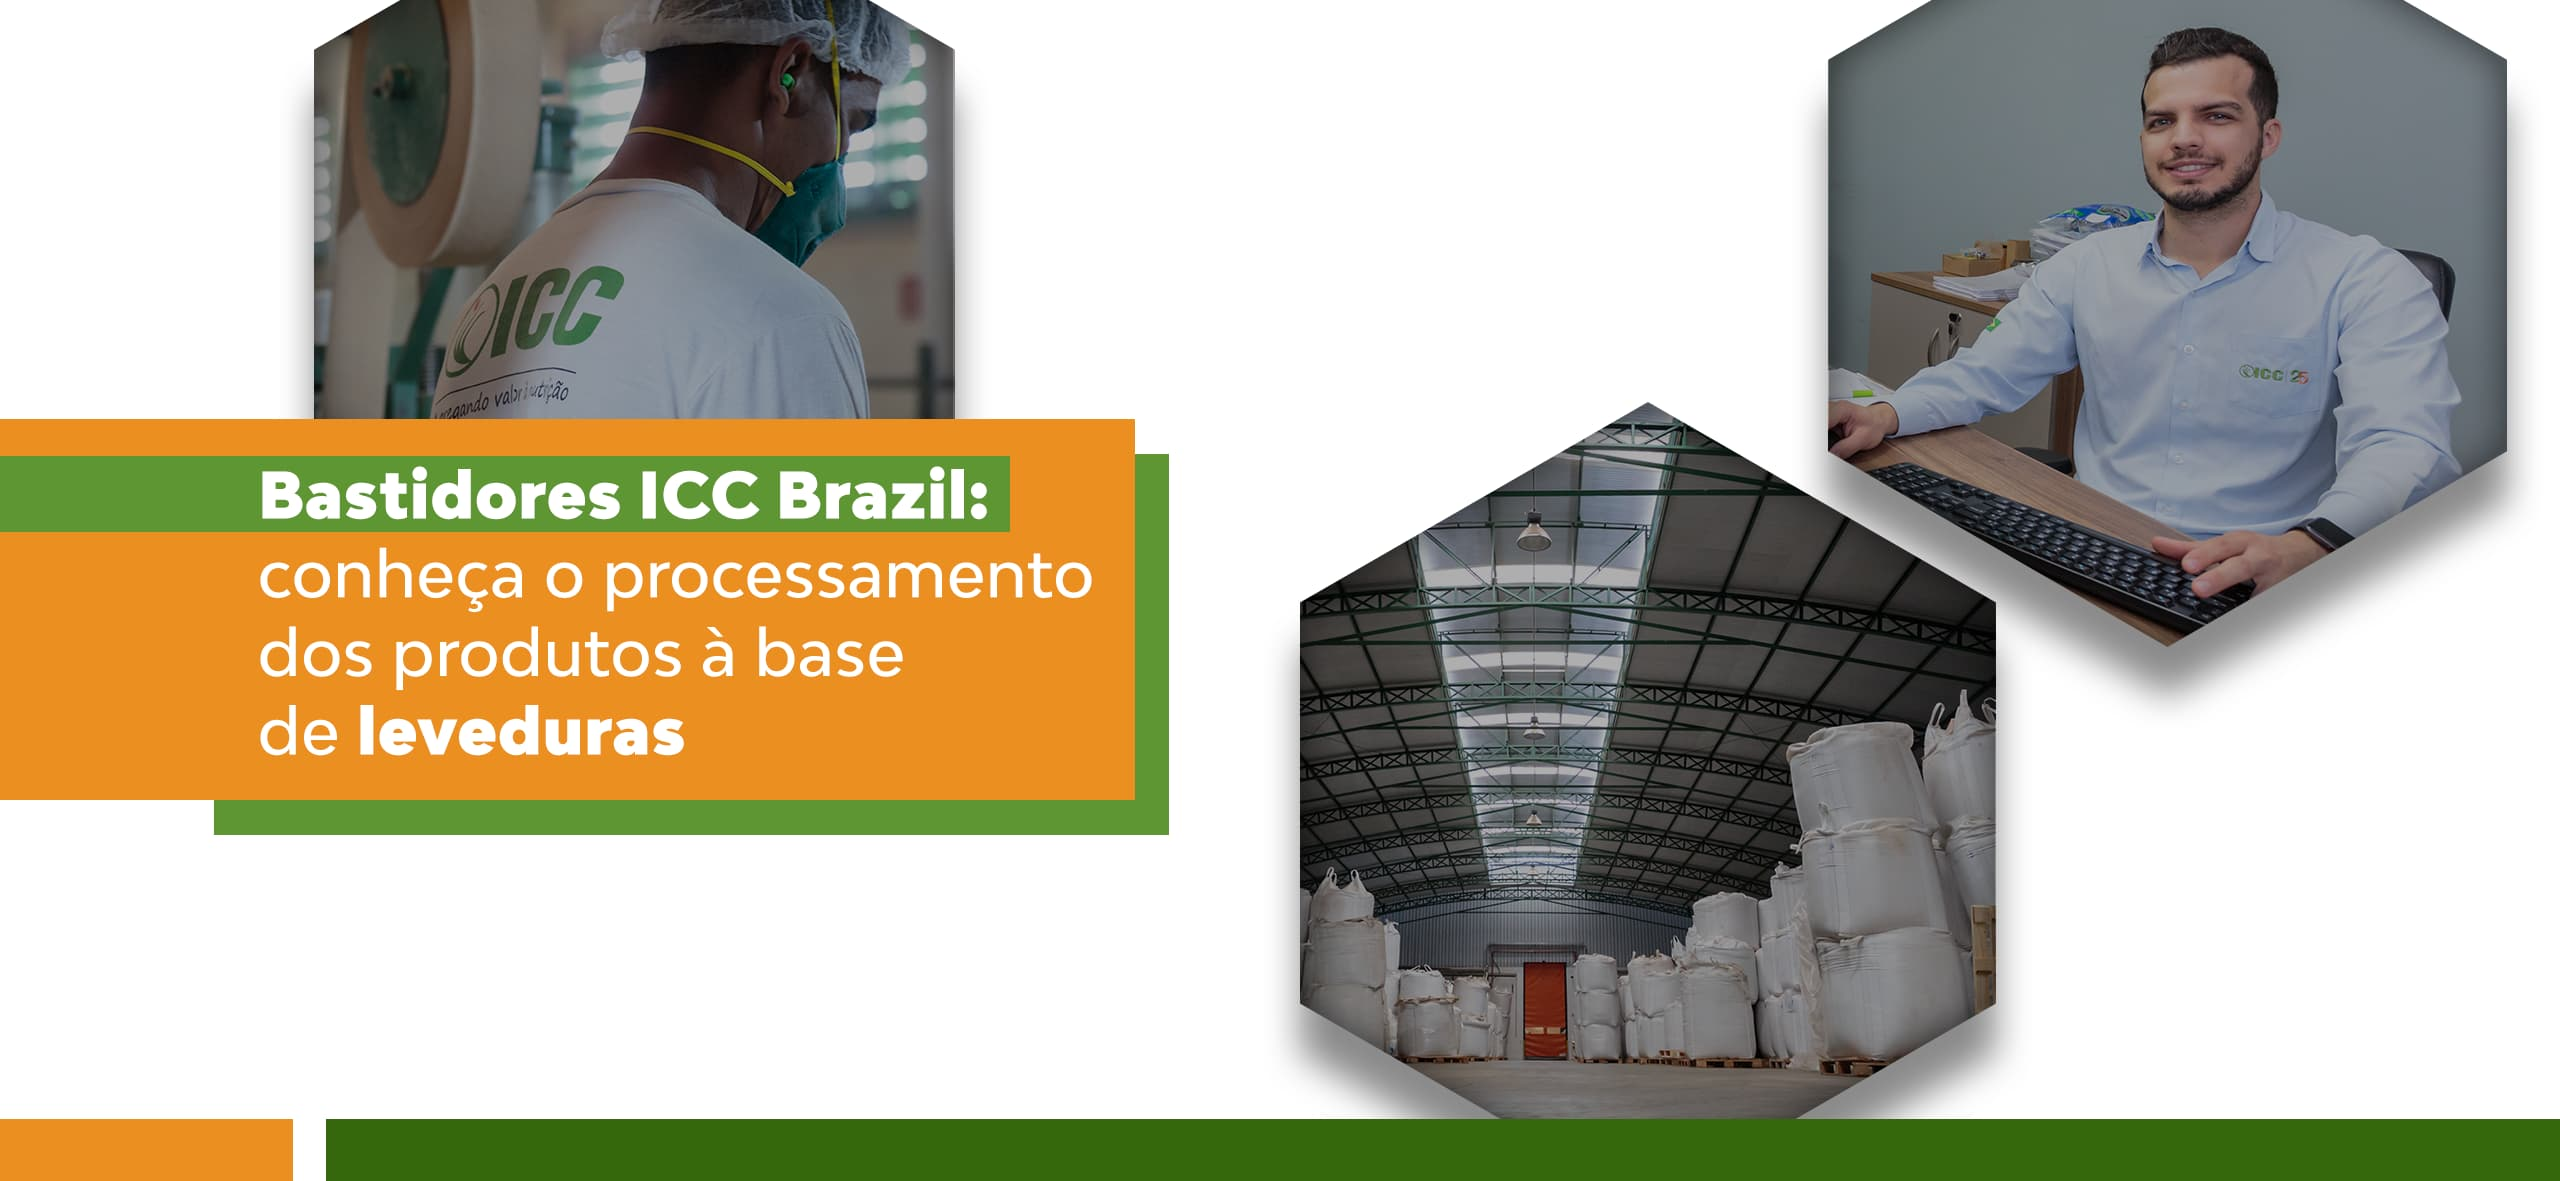 Behind the Scenes with ICC Brazil: learn about the processing of yeast-based products